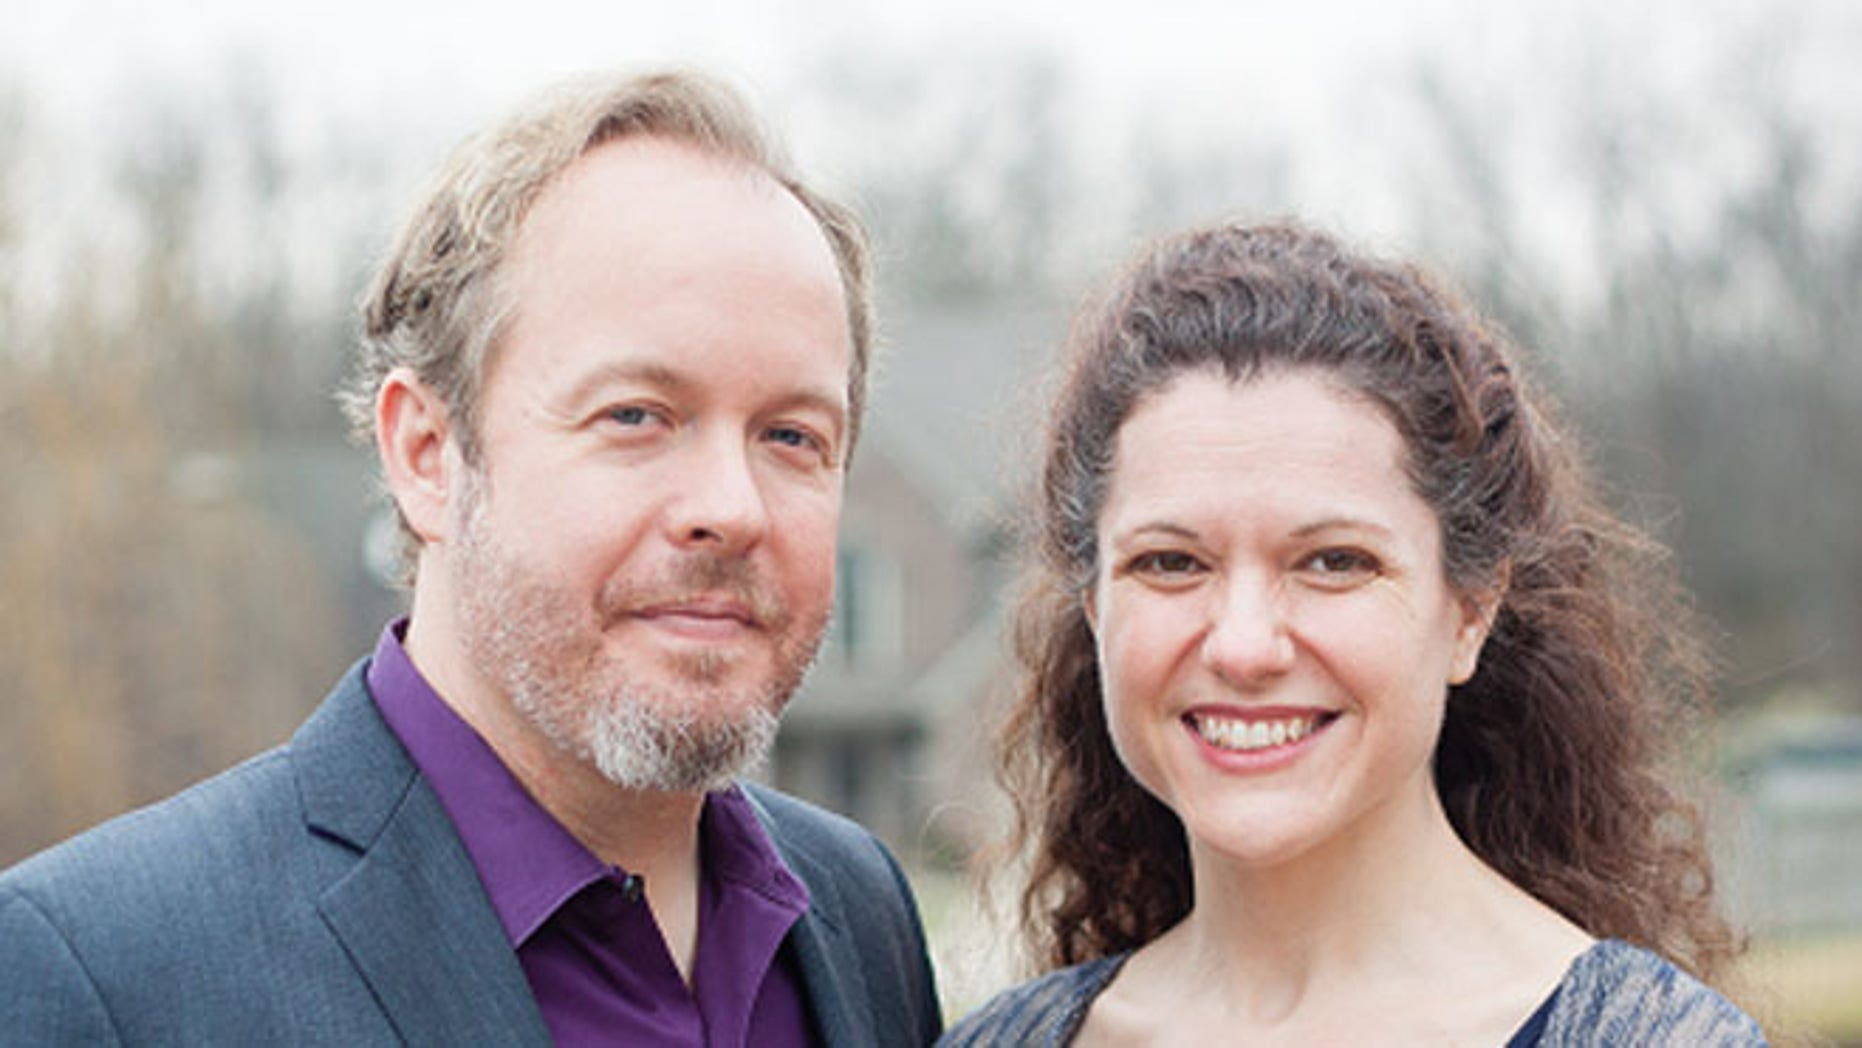 2014: Drew and Heather Curtis, candidates for Kentucky governor and lieutenant governor.